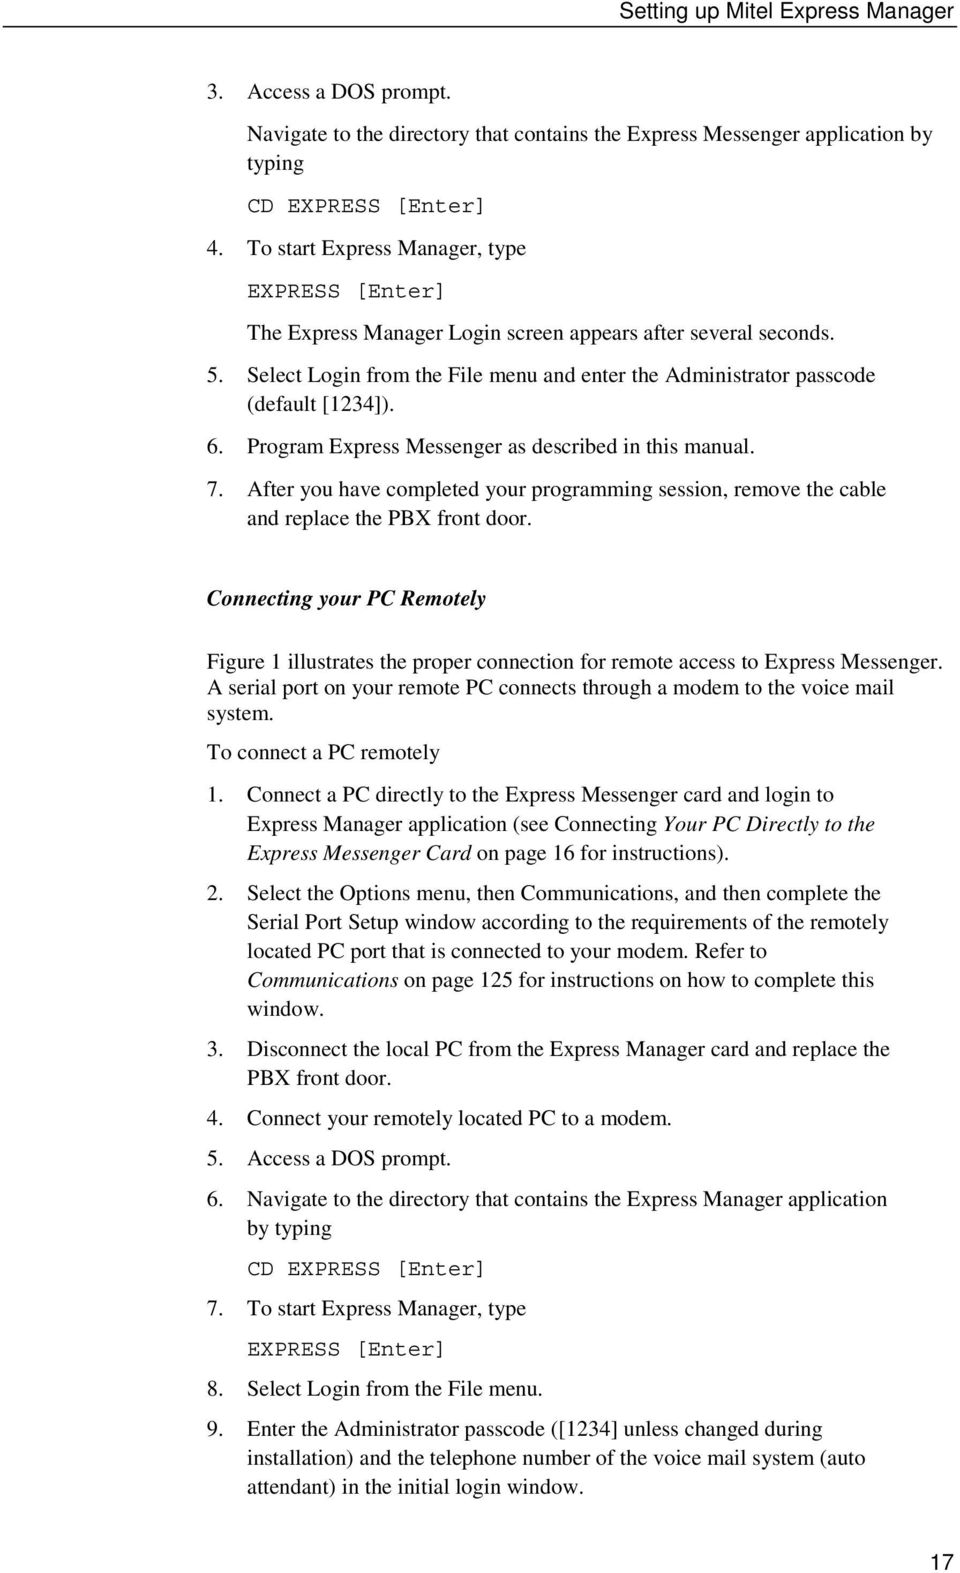 6. Program Express Messenger as described in this manual. 7. After you have completed your programming session, remove the cable and replace the PBX front door.